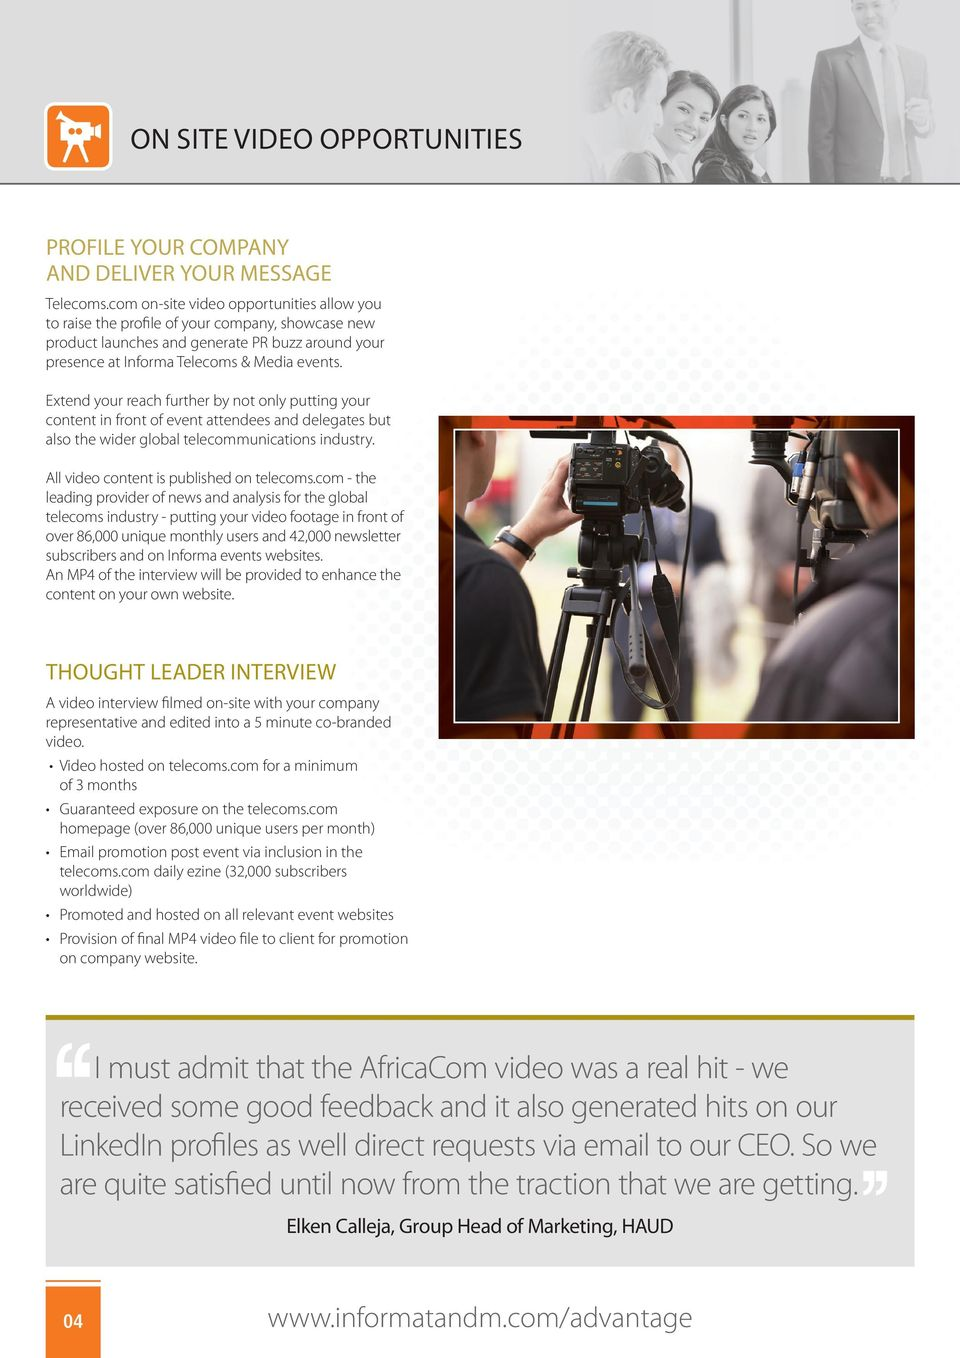 Extend your reach further by not only putting your content in front of event attendees and delegates but also the wider global telecommunications industry. All video content is published on telecoms.